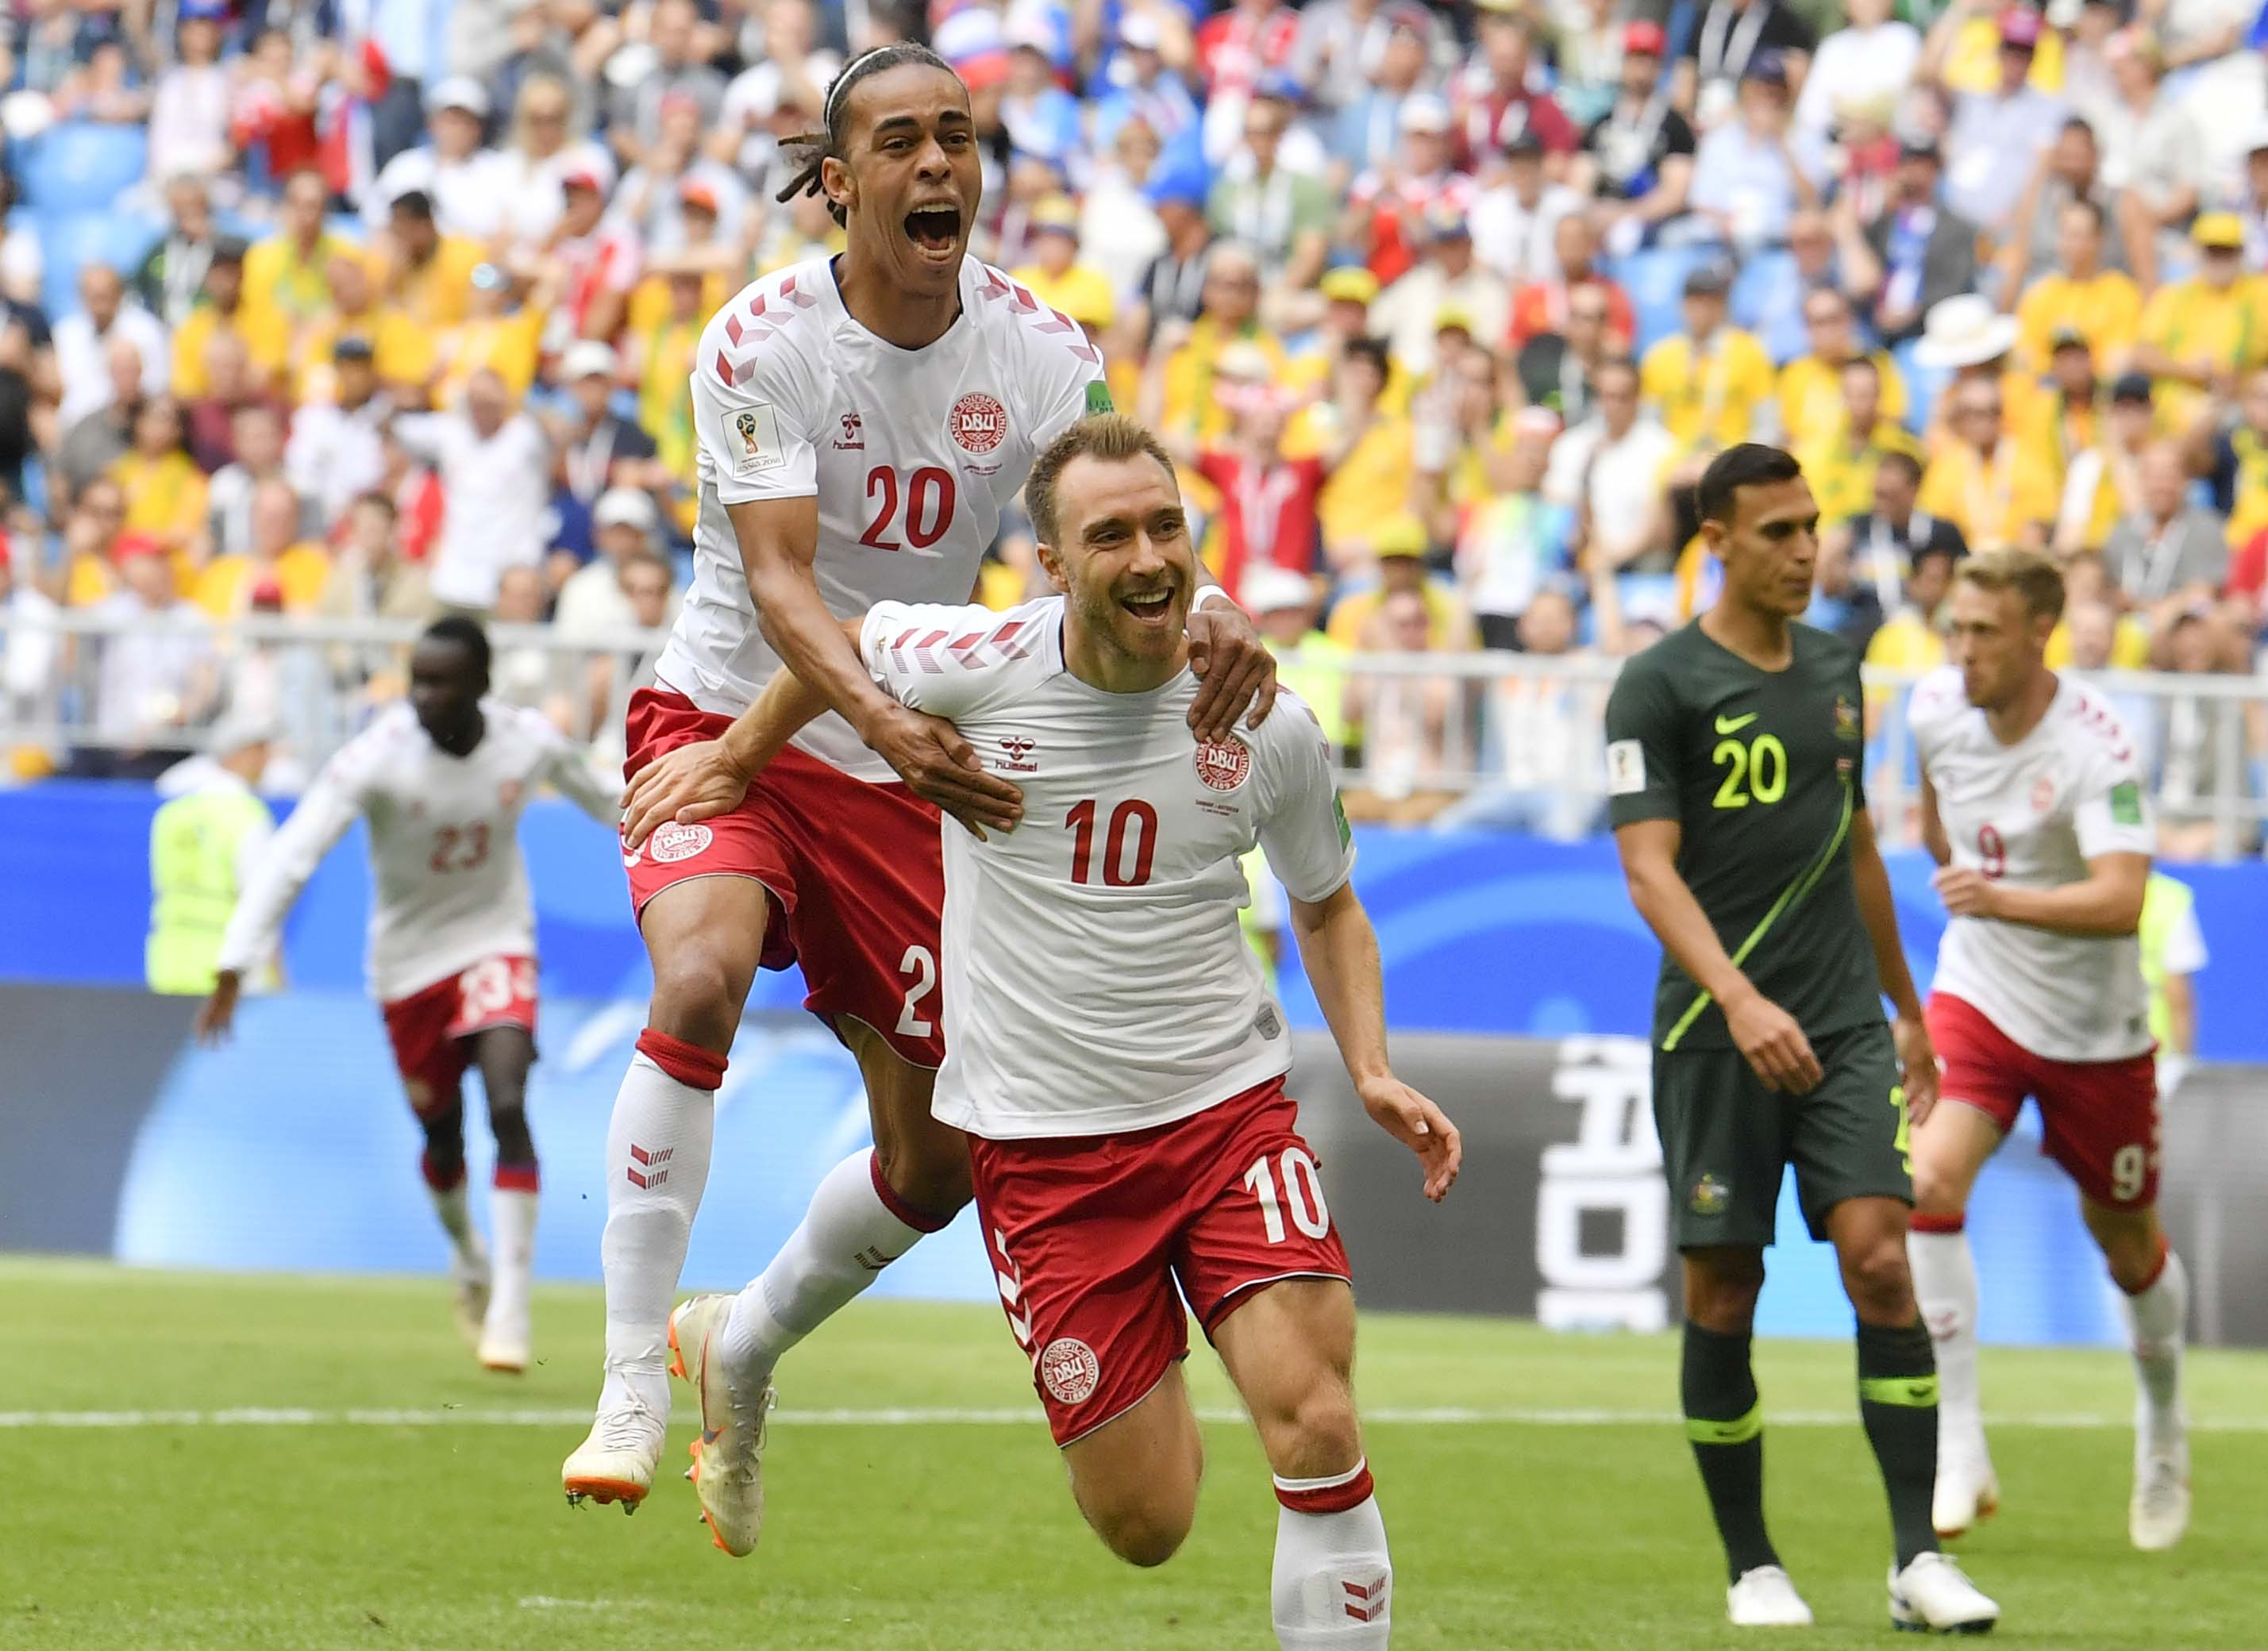 Denmark`s Christian Eriksen is congratulated by his teammate Yussuf Yurary Poulsen after scoring the opening goal during the group C match between Denmark and Australia at the World Cup match in Samara, Russia on Thursday. Denmark, Australia match ended 1-1 draw.